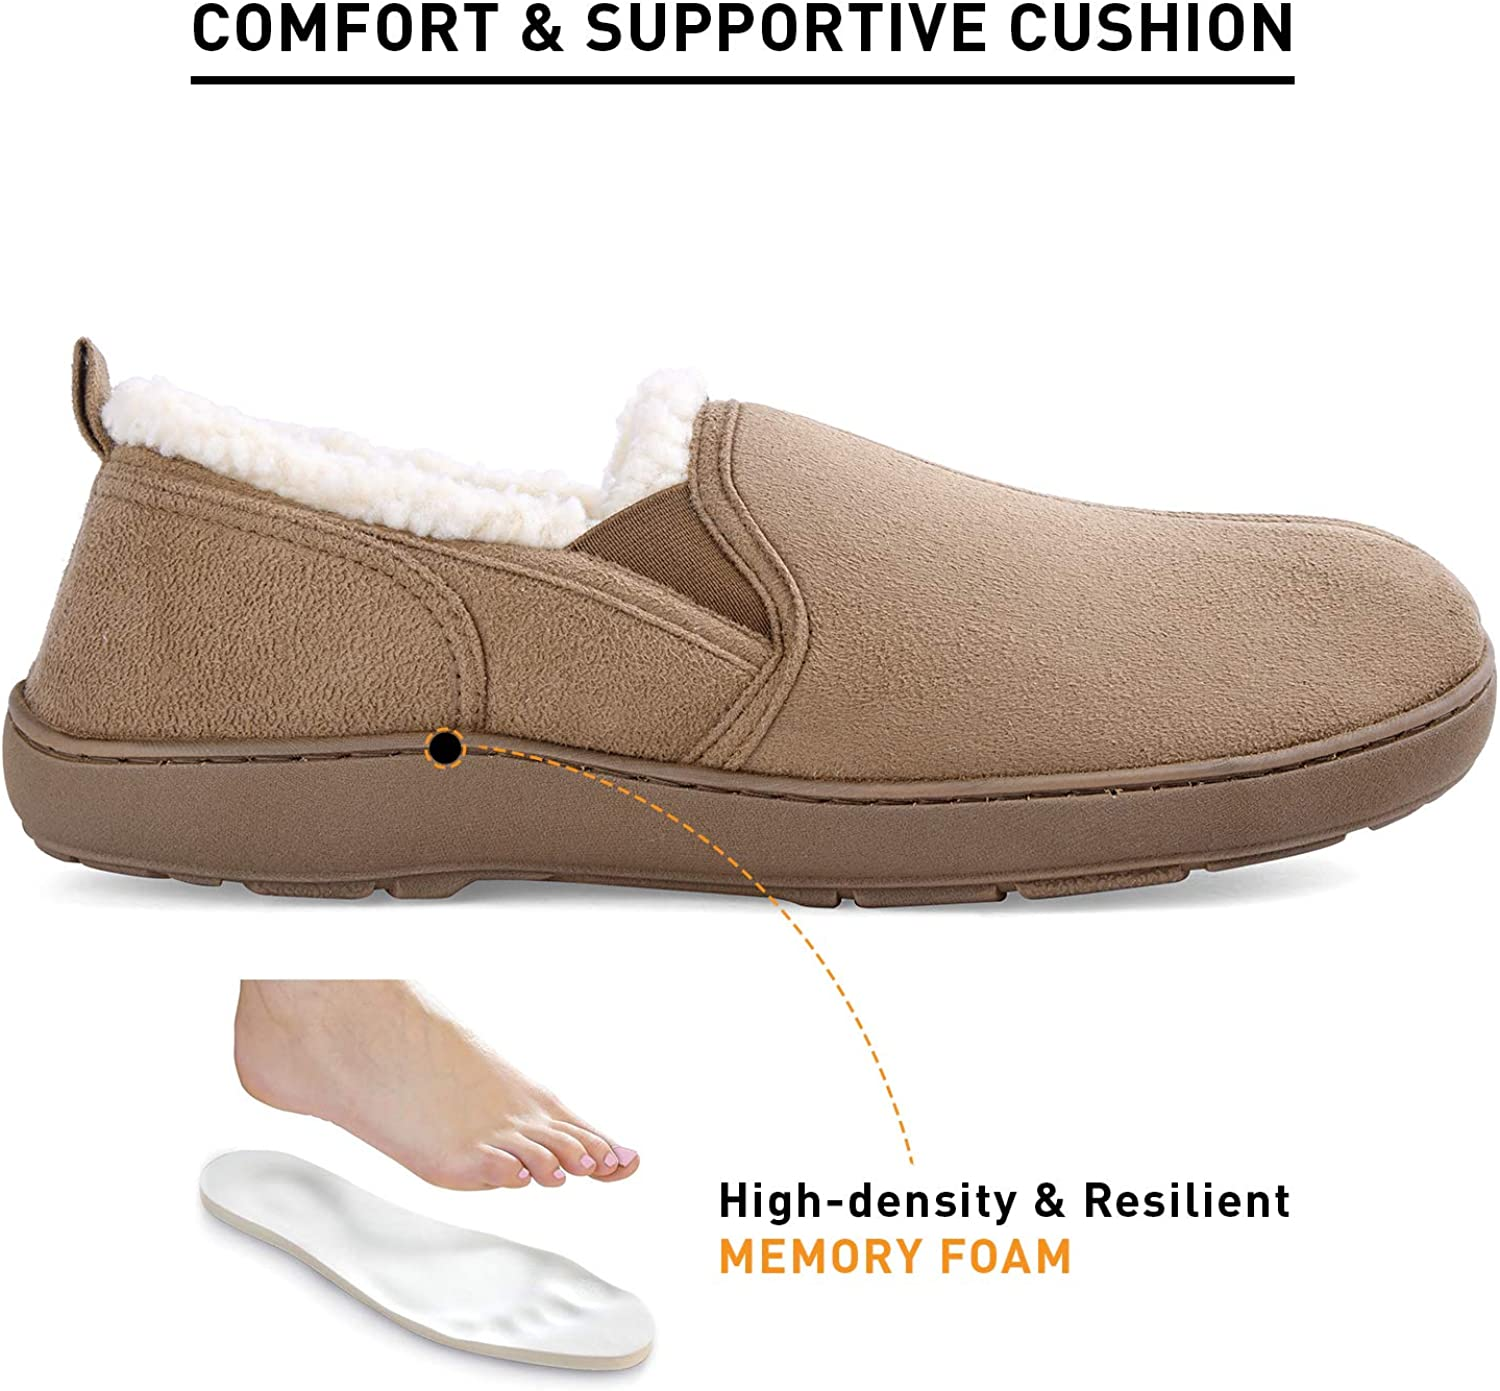 Mens Casual Memory Foam Comfortable Moccasin Slippers House Shoes Indoor//Outdoor Anti-Slip Rubber Sole